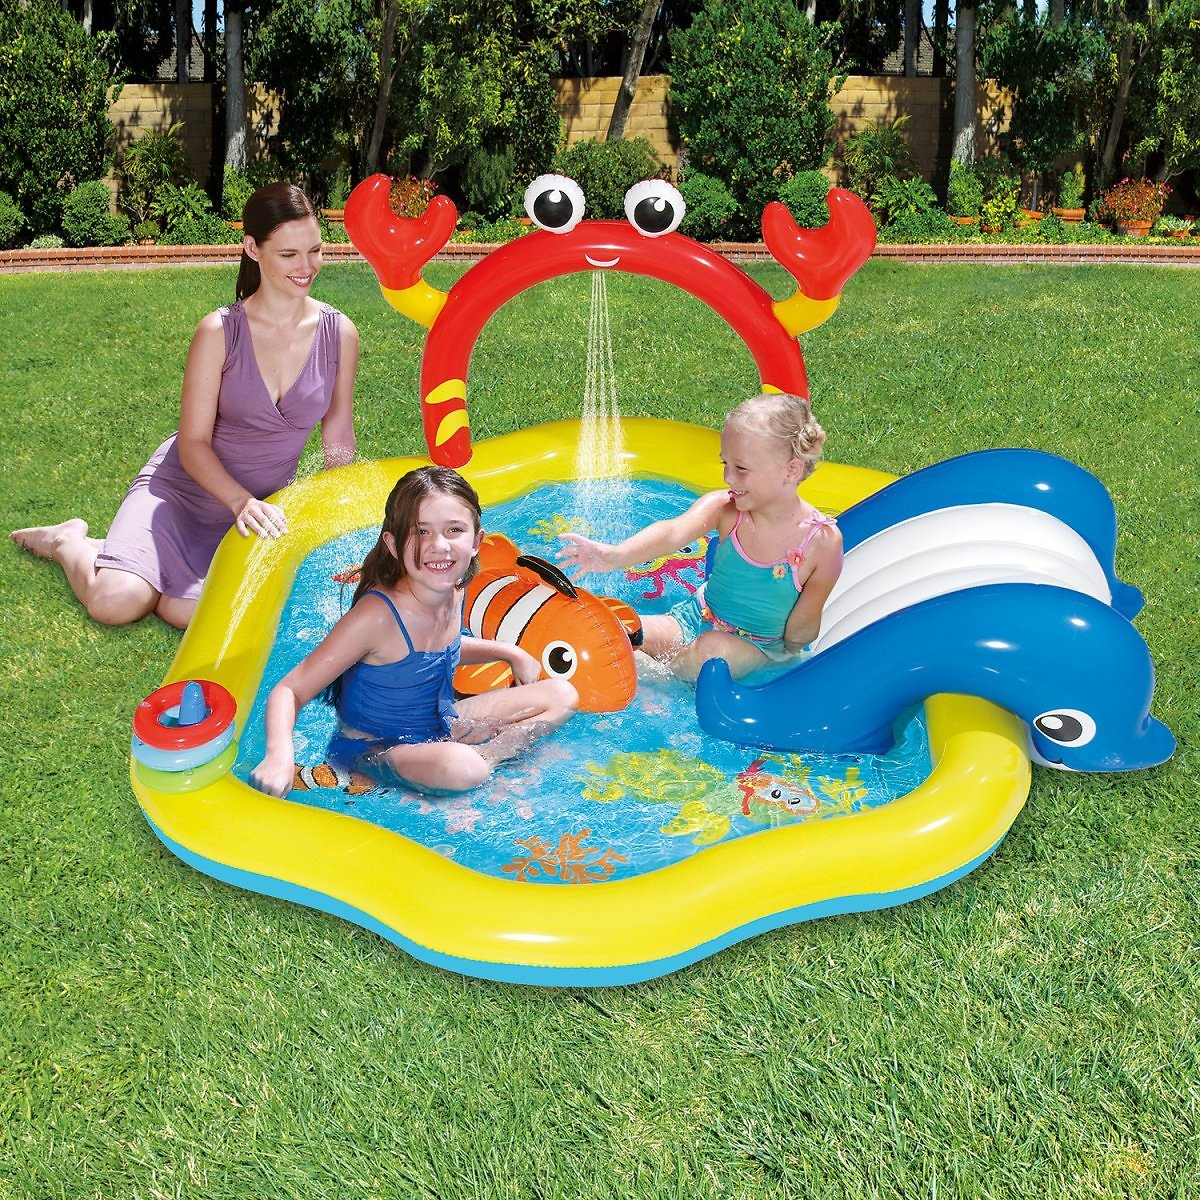 Summer Waves Inflatable Under The Sea Kiddie Swimming Pool Play Center w/ Slide